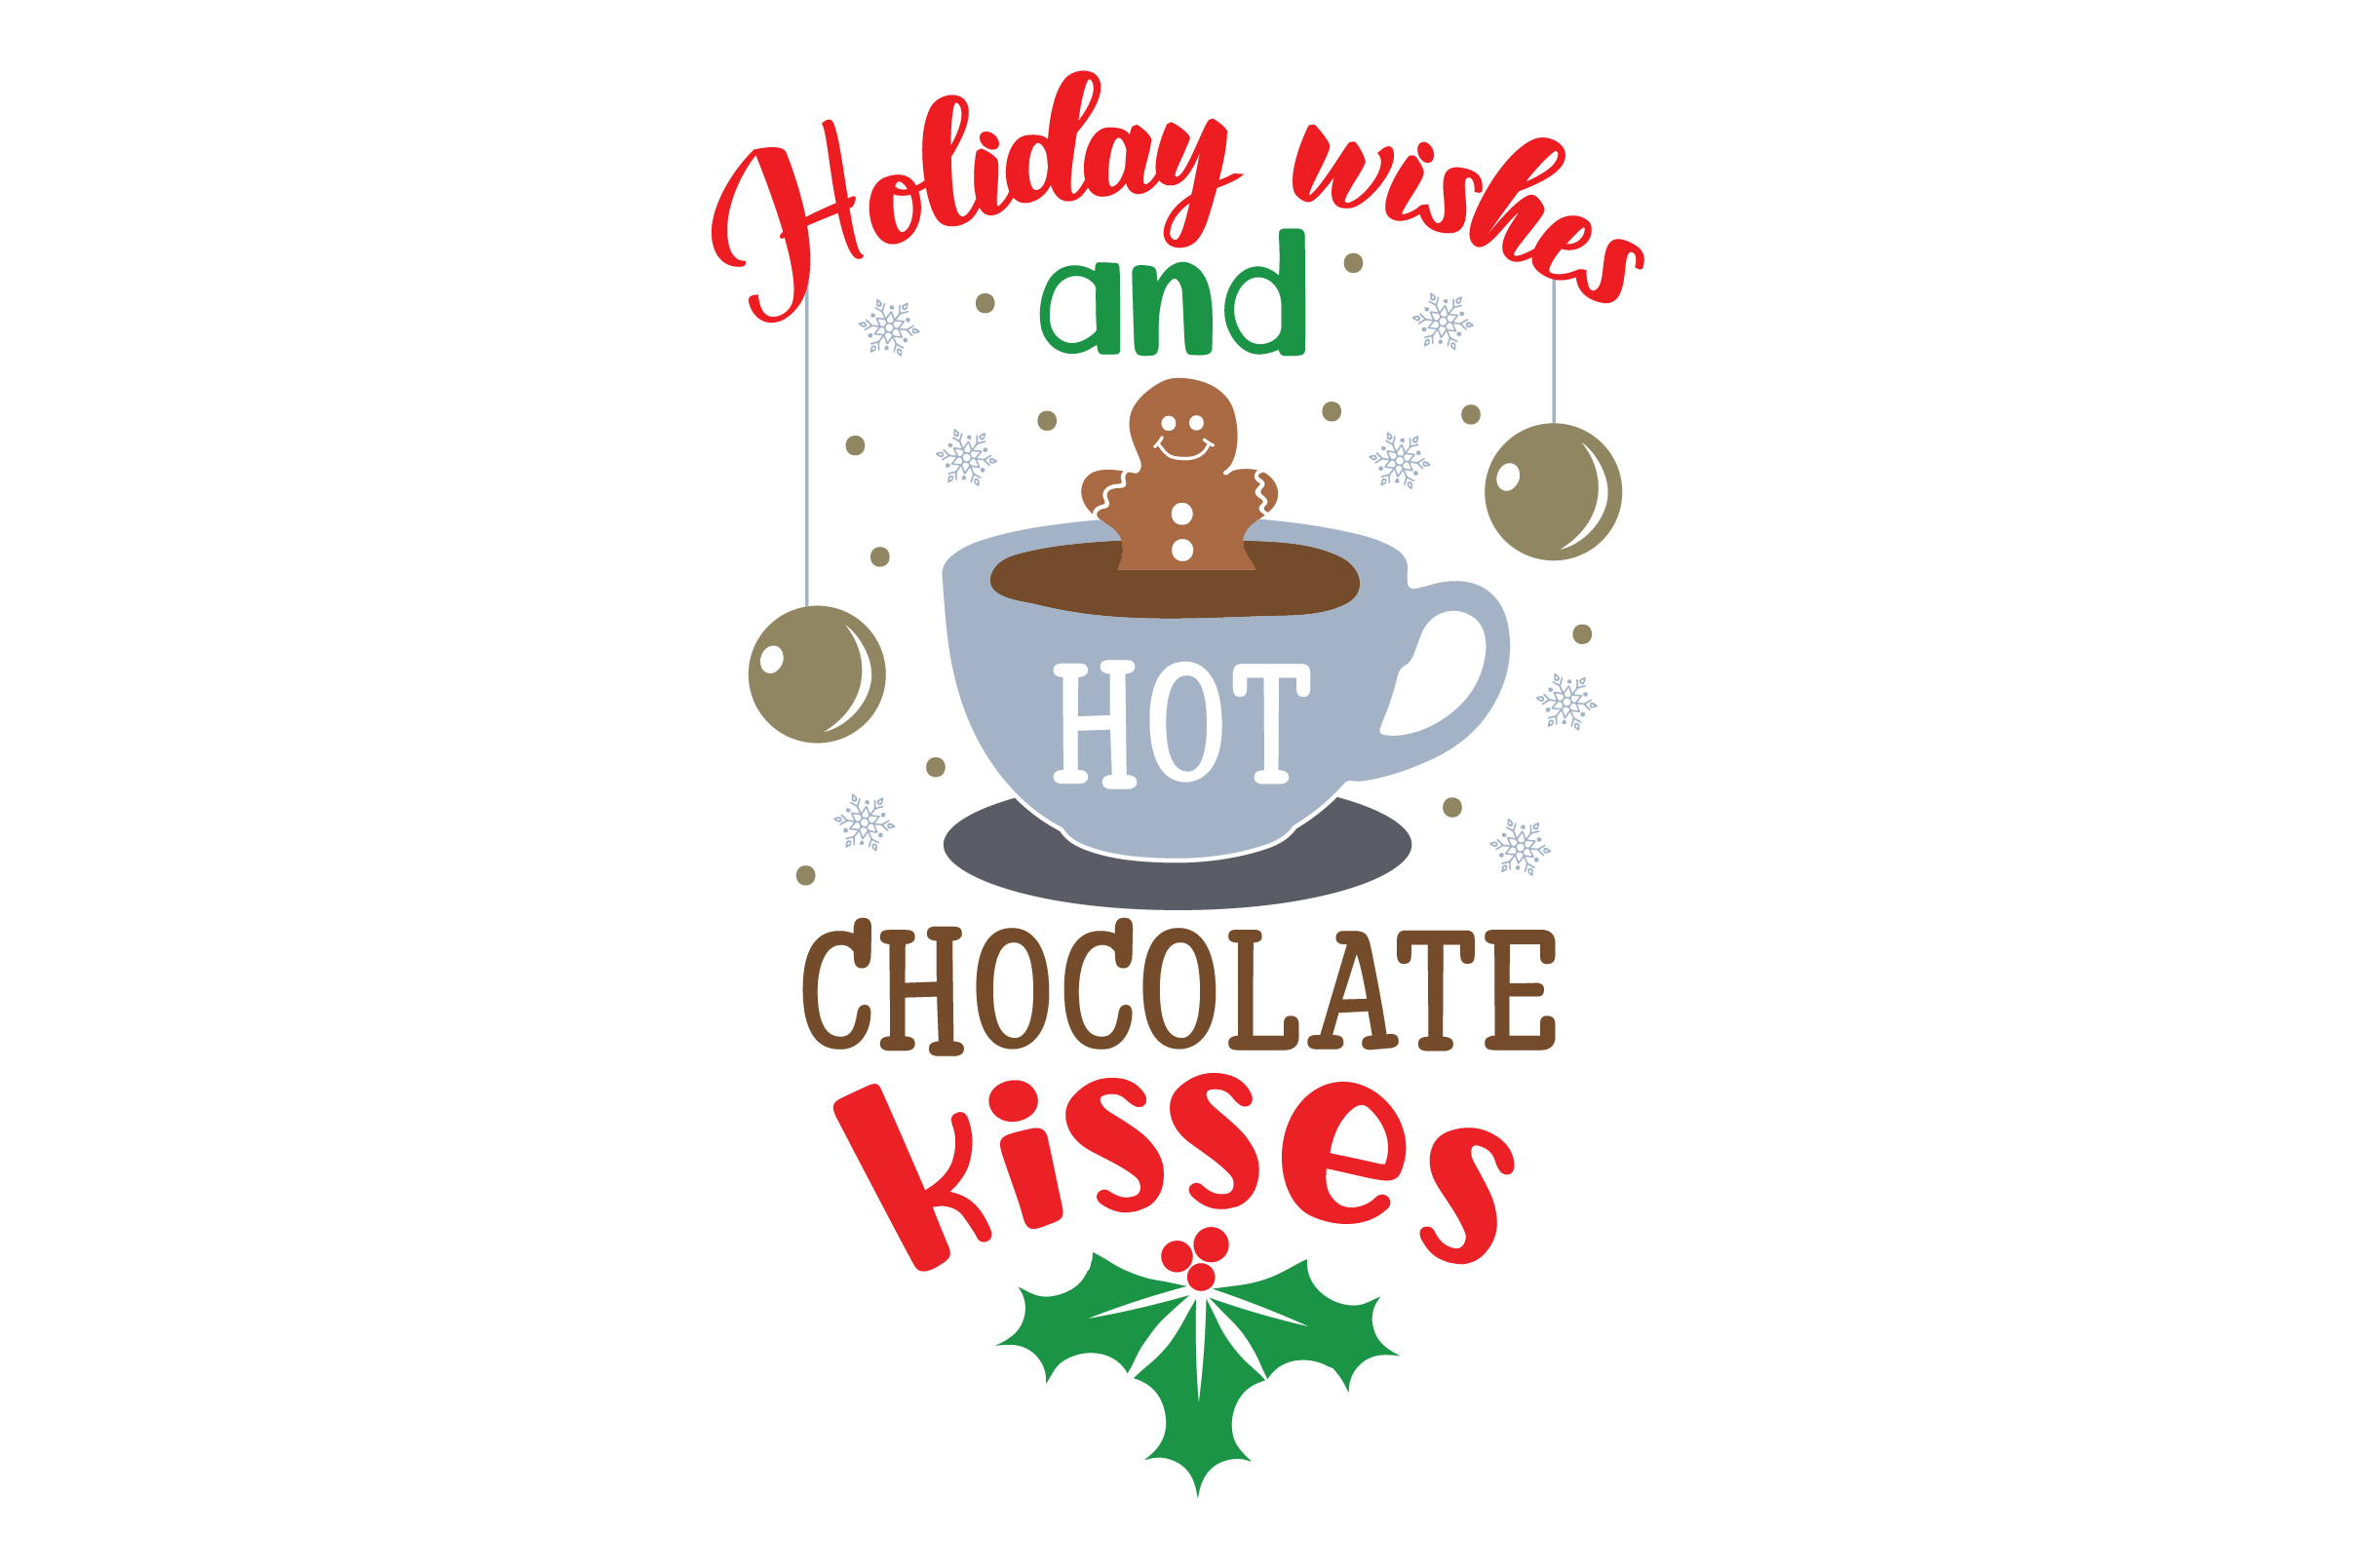 Download Free Holiday Wishes And Hot Chocolate Kisses Svg Cut File By Creative for Cricut Explore, Silhouette and other cutting machines.